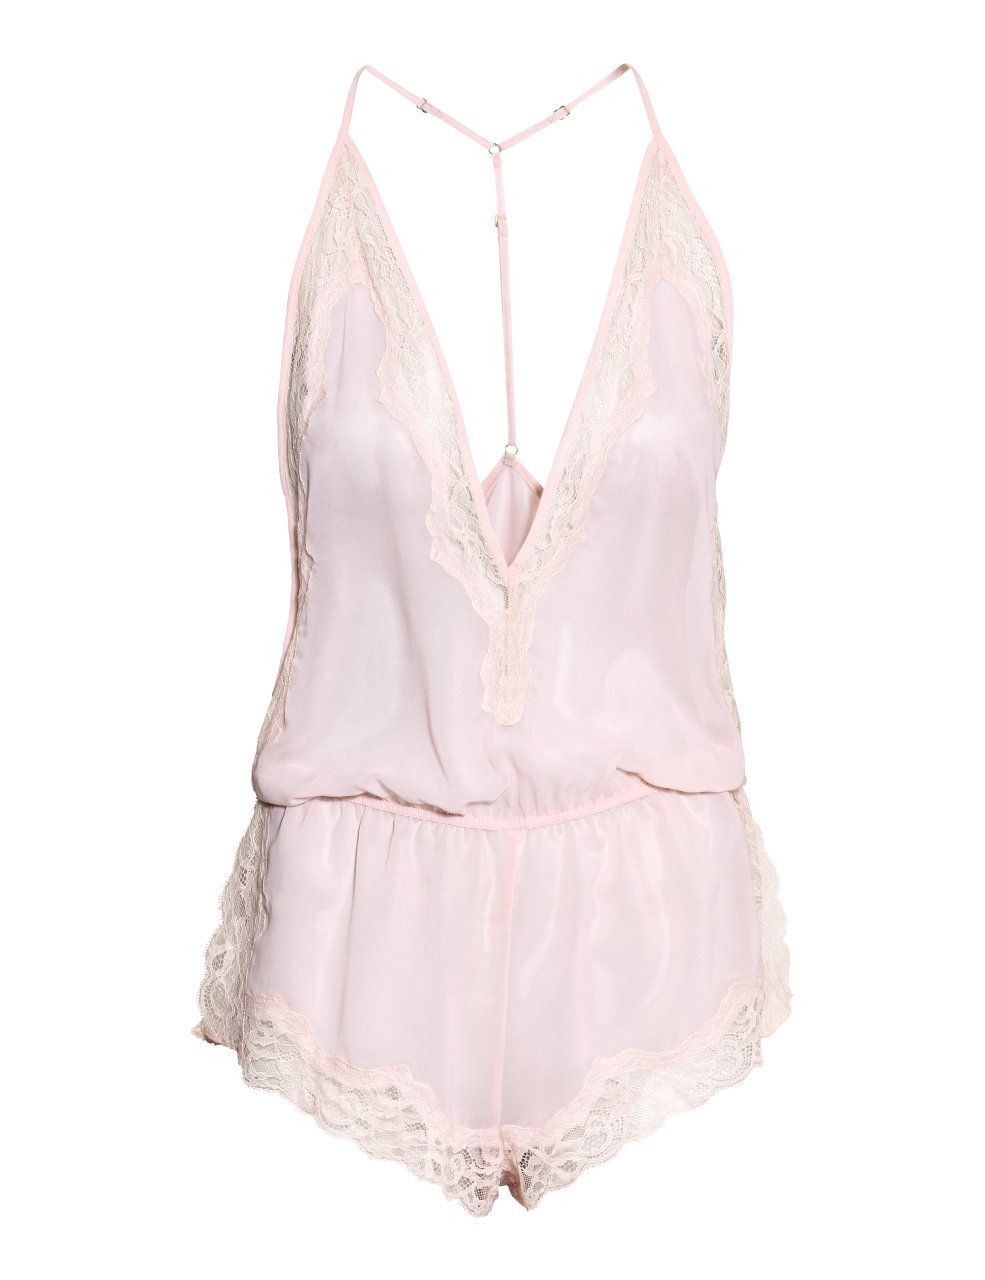 6e41af723e H M lingerie playsuit! So elegant